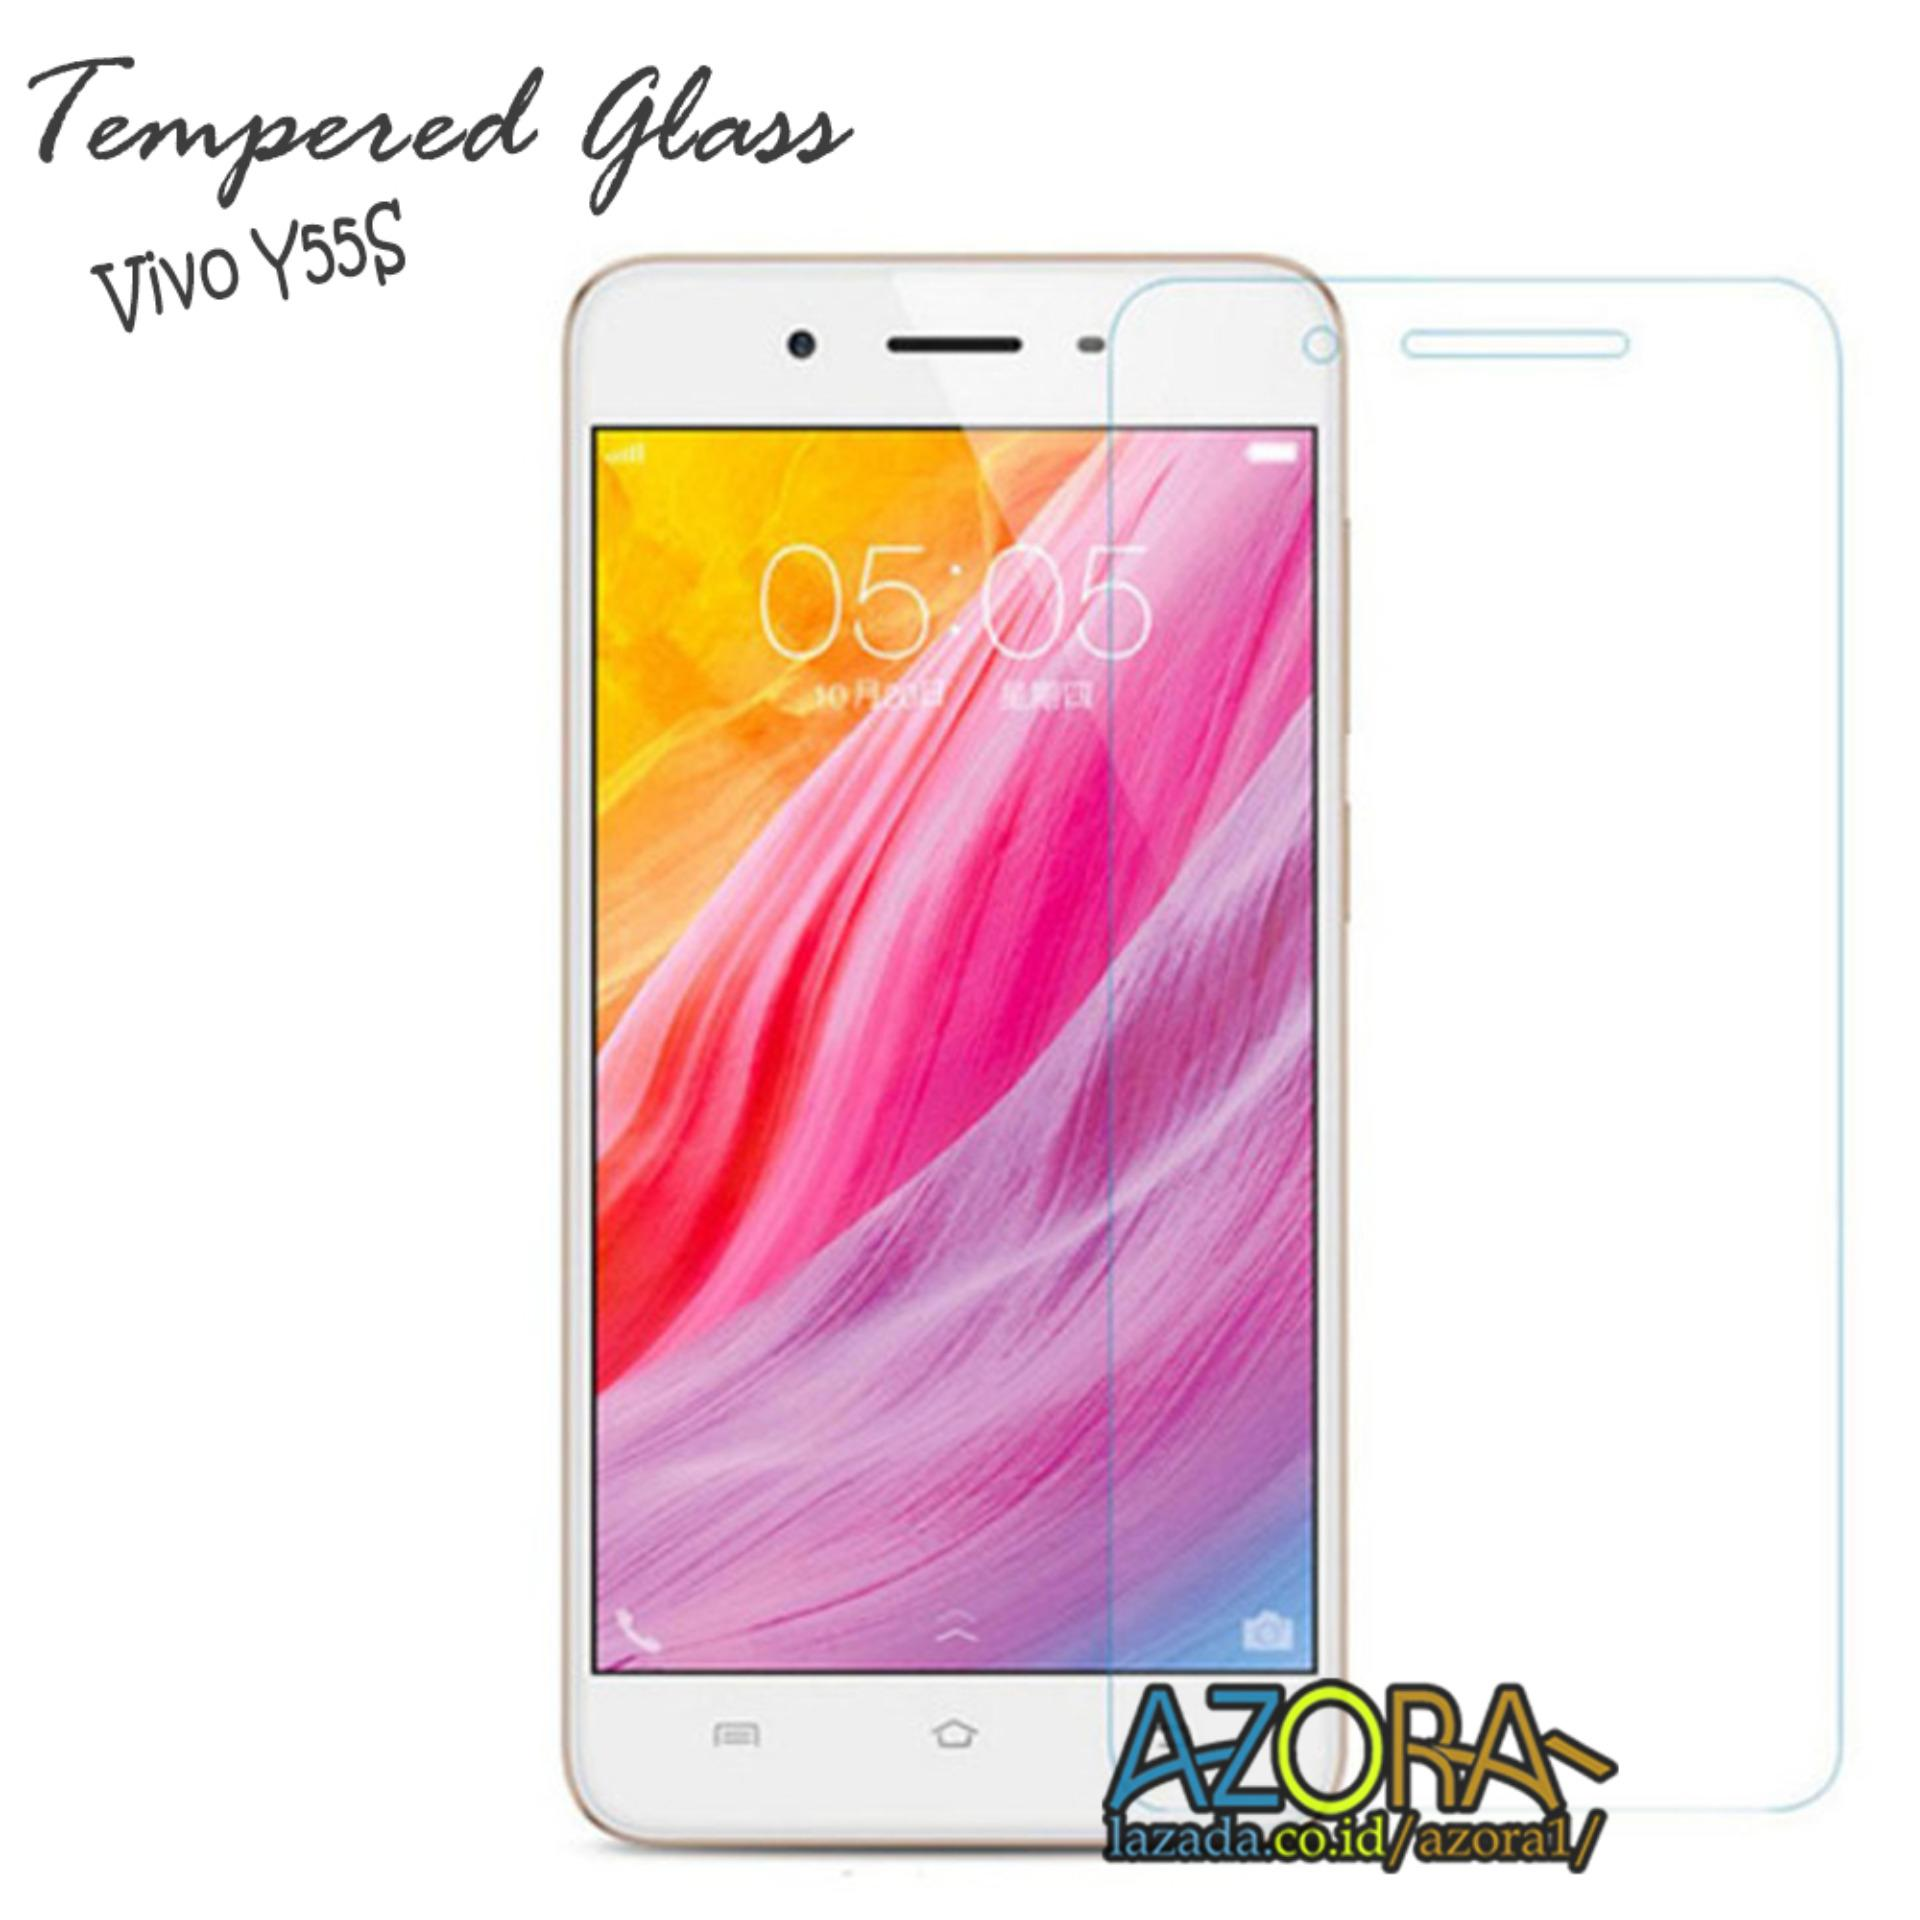 Tempered Glass Vivo Y55S Screen Protector Pelindung Layar Kaca Anti Gores - Bening